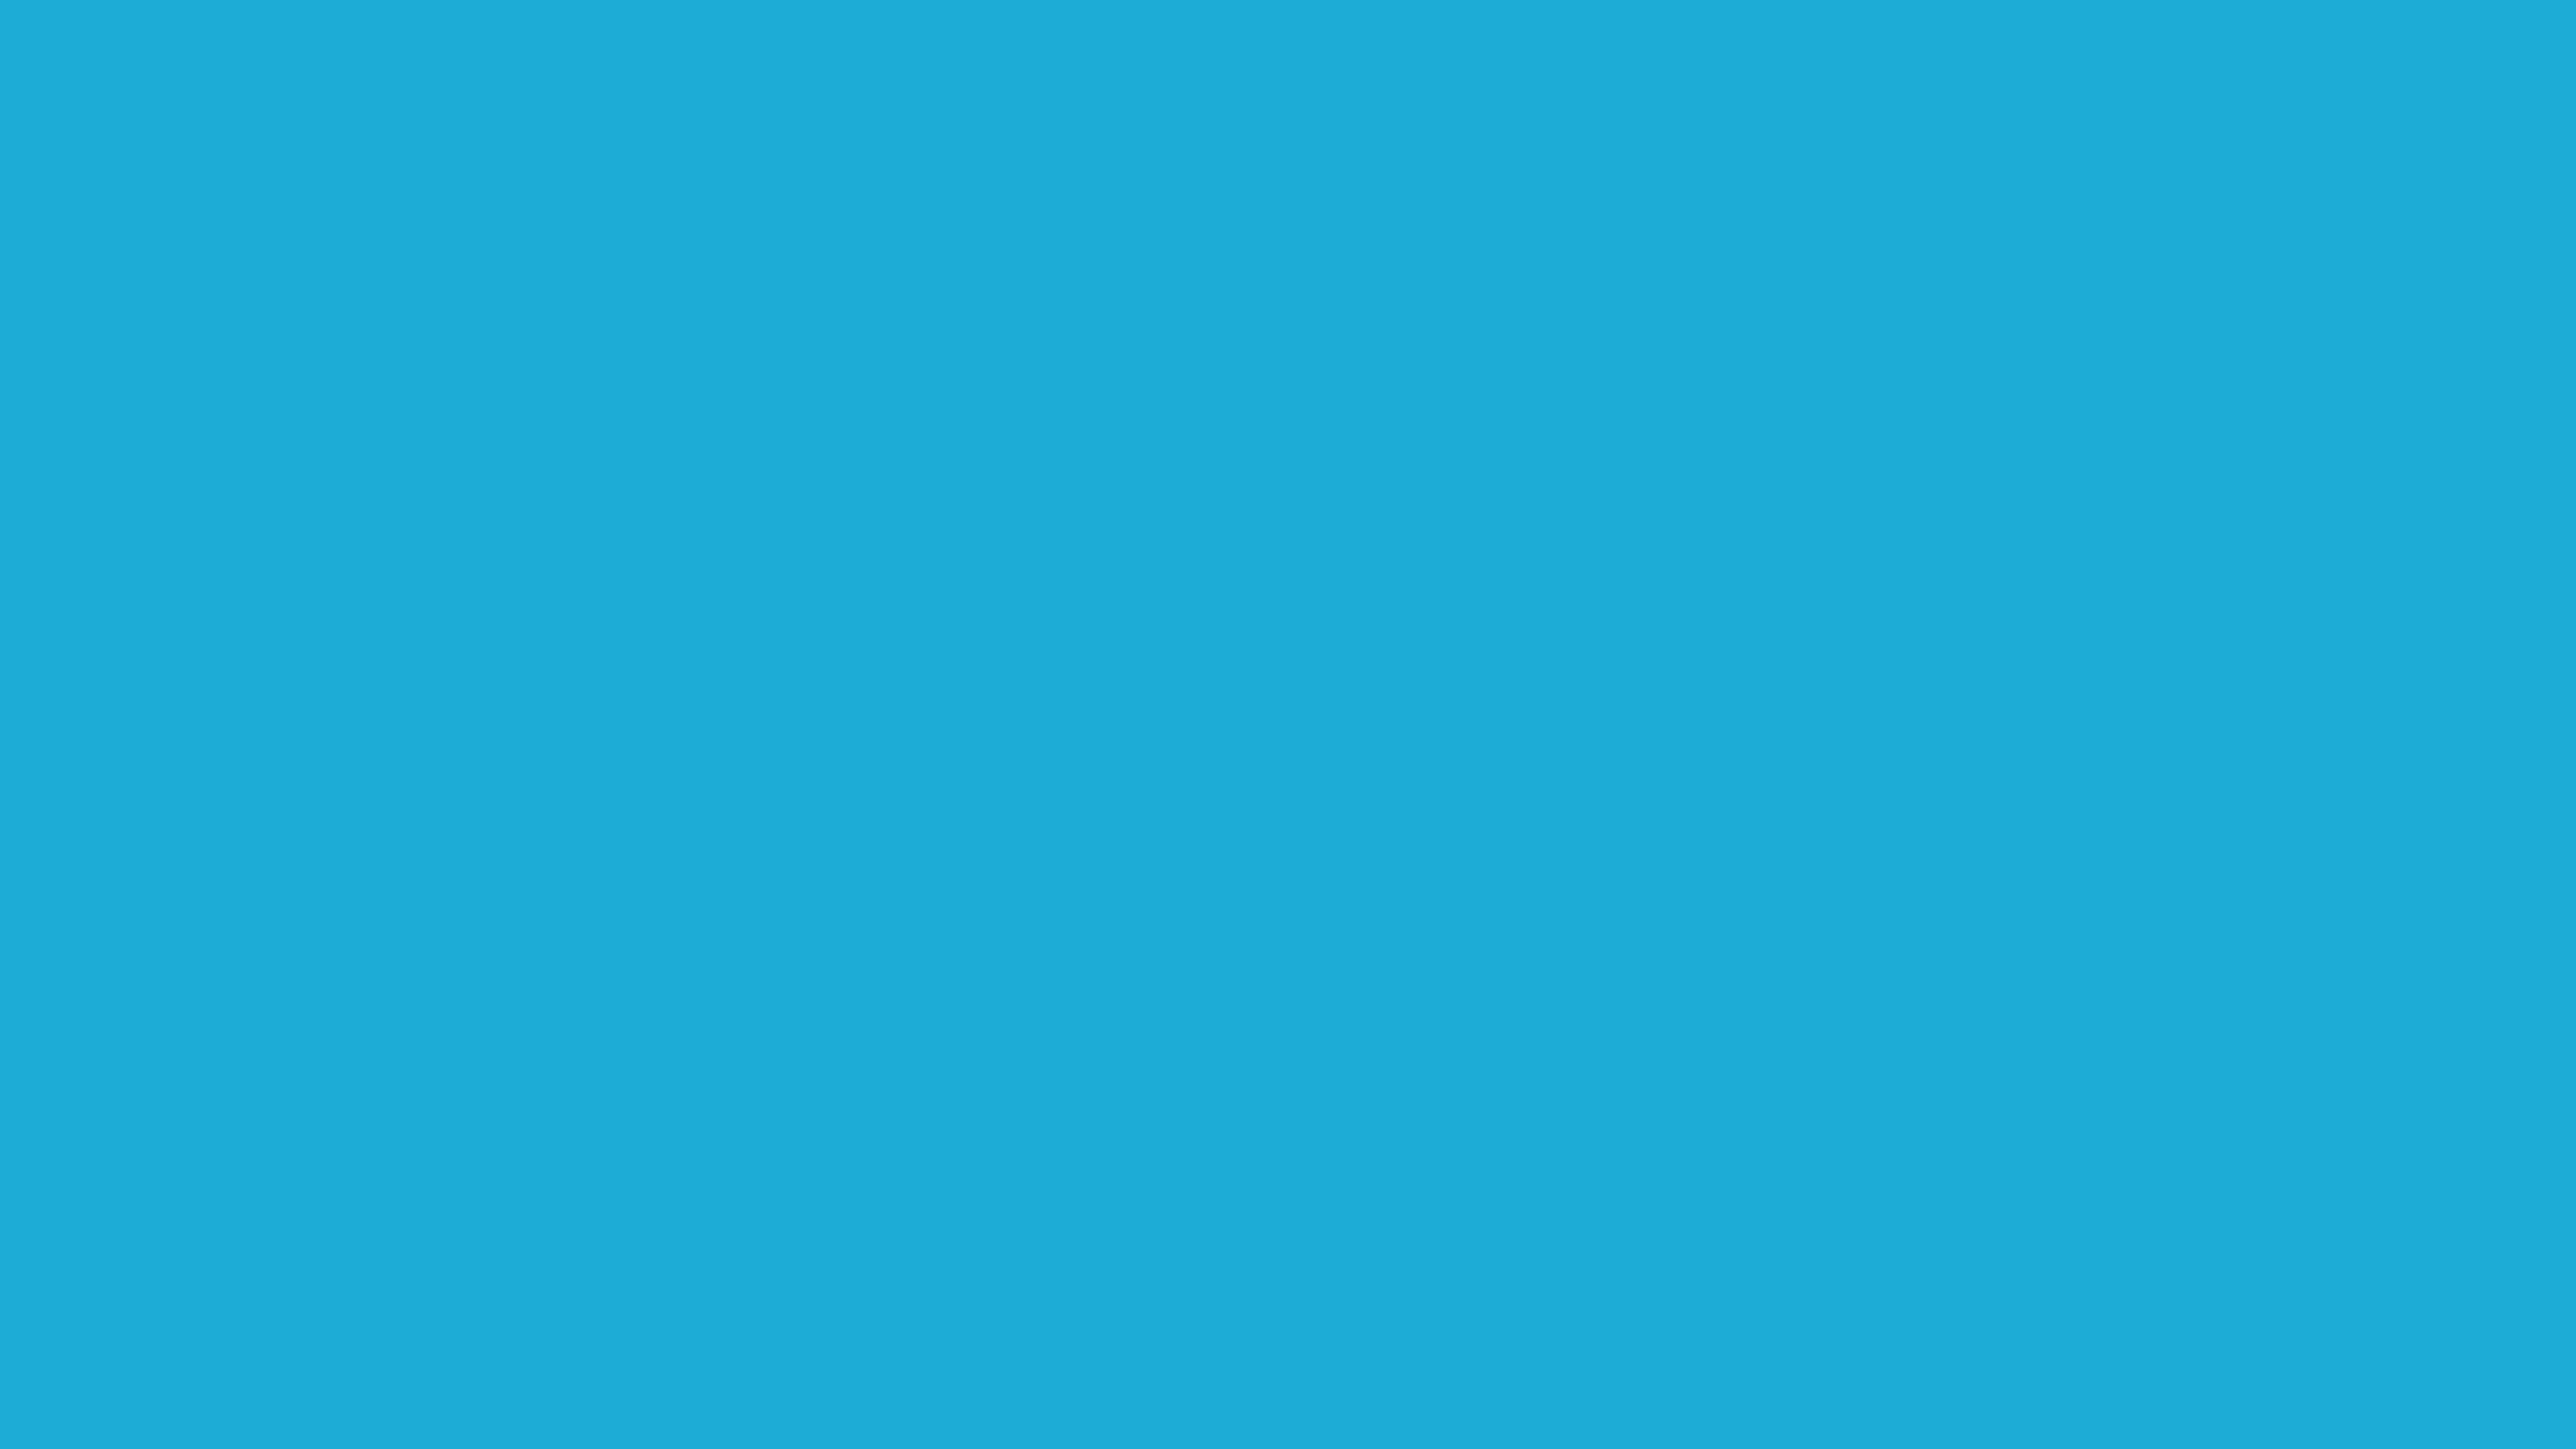 7680x4320 Bright Cerulean Solid Color Background